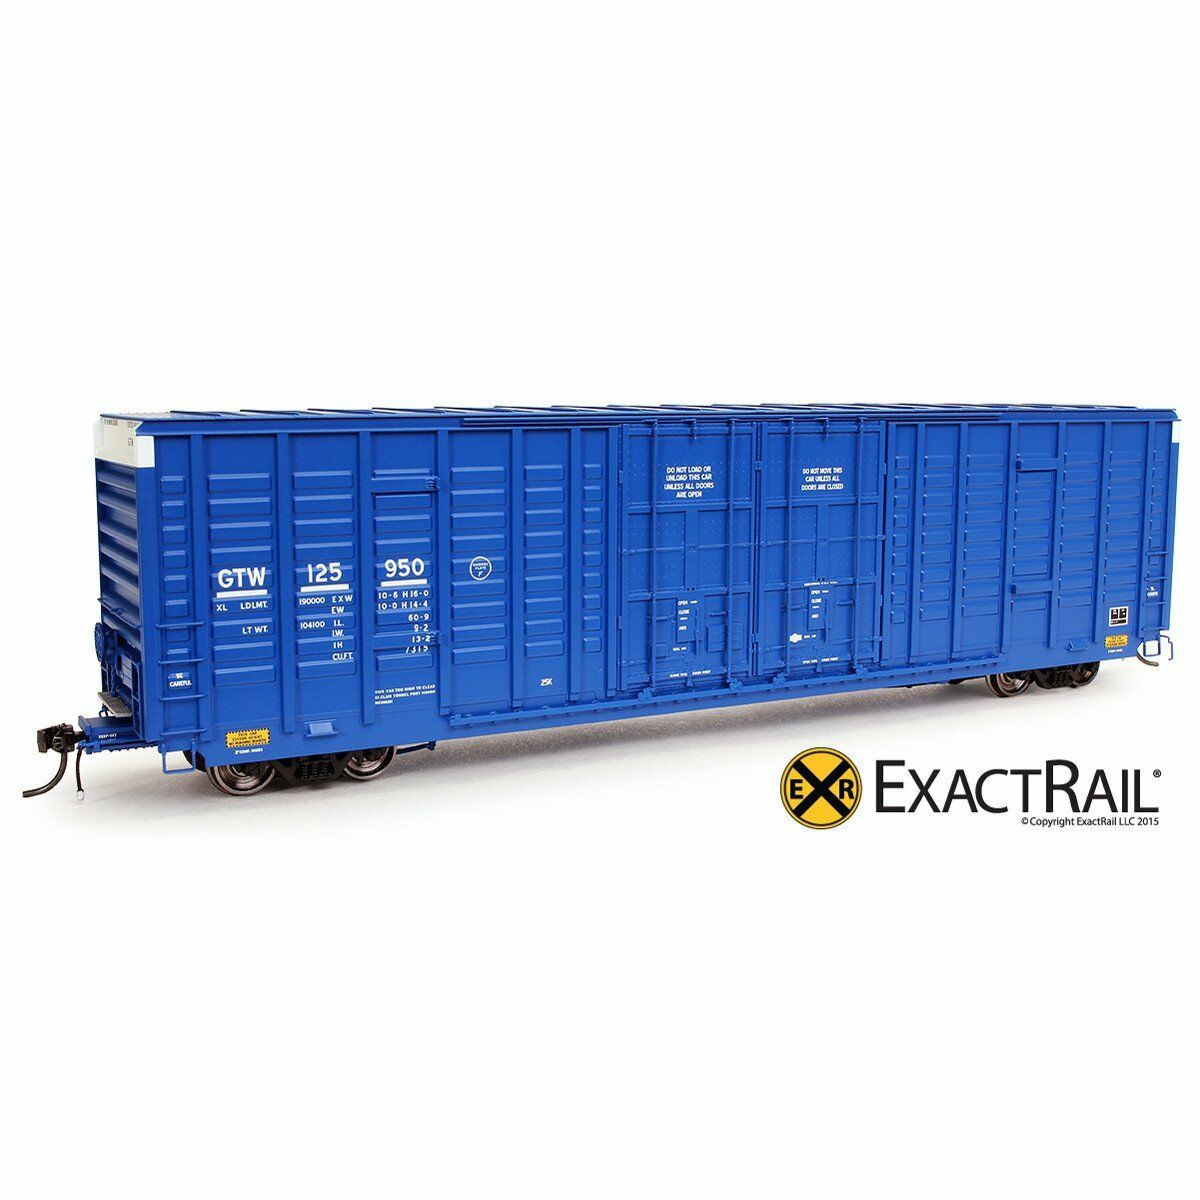 EXACTRAIL HO Grand Trunk Western P-S 7315 Waffle Box Car GTW EP-80617-3